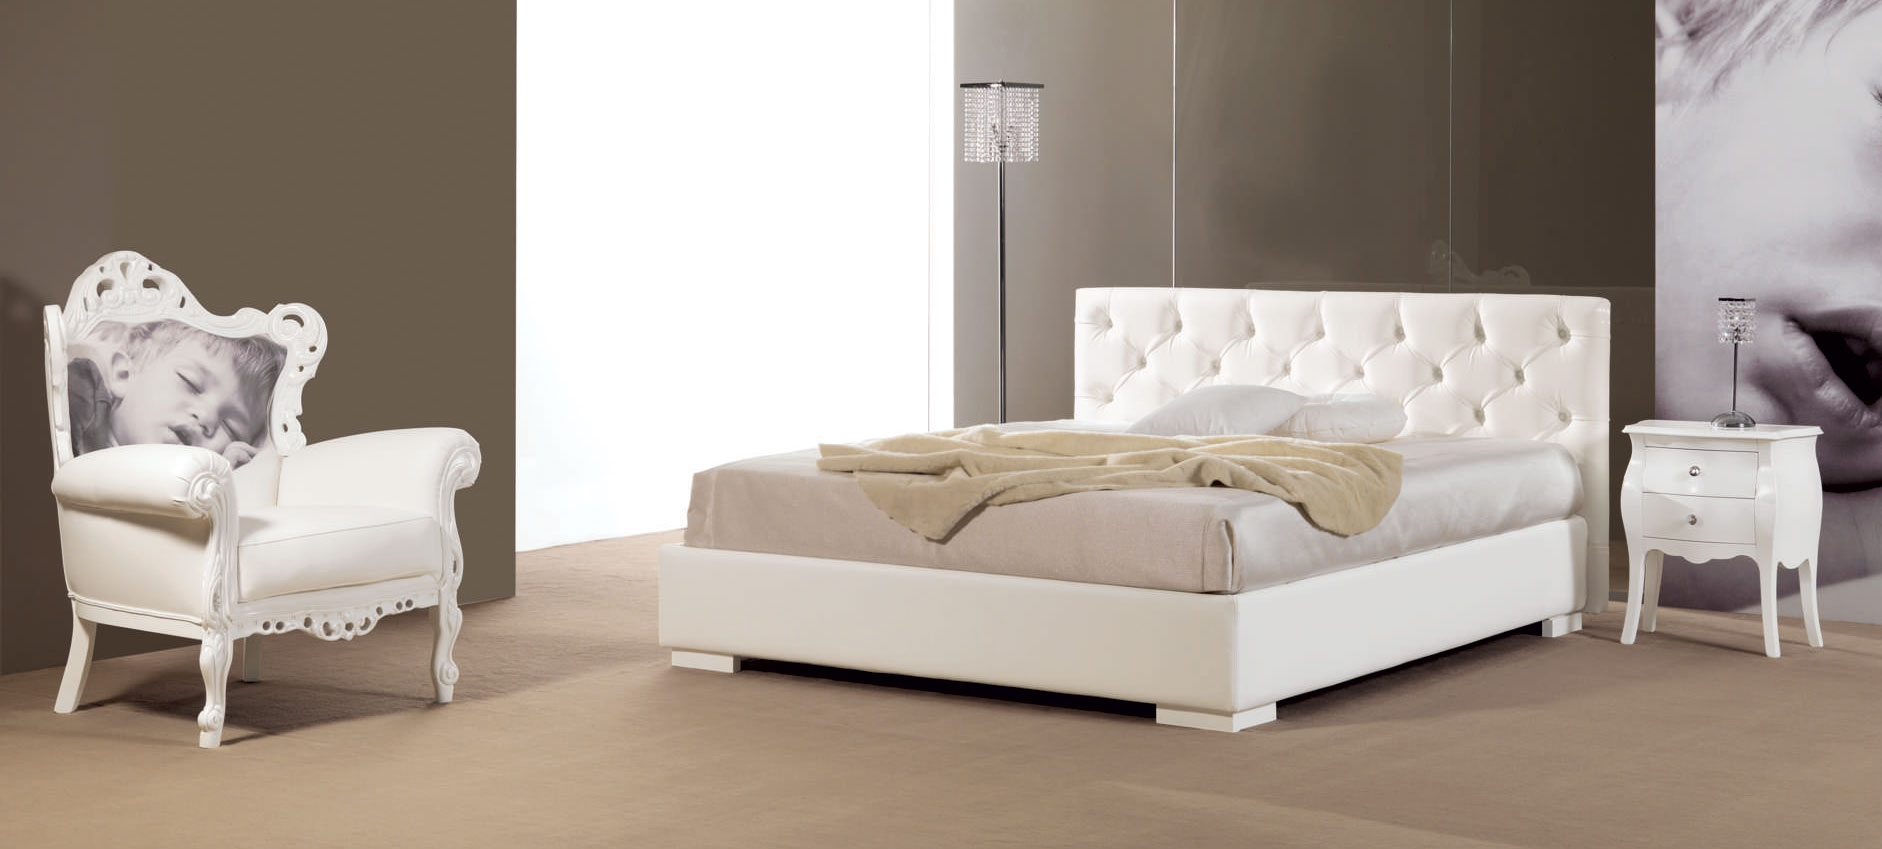 Lit double avec t te de lit capitonn simili cuir for Lit chambre adulte design